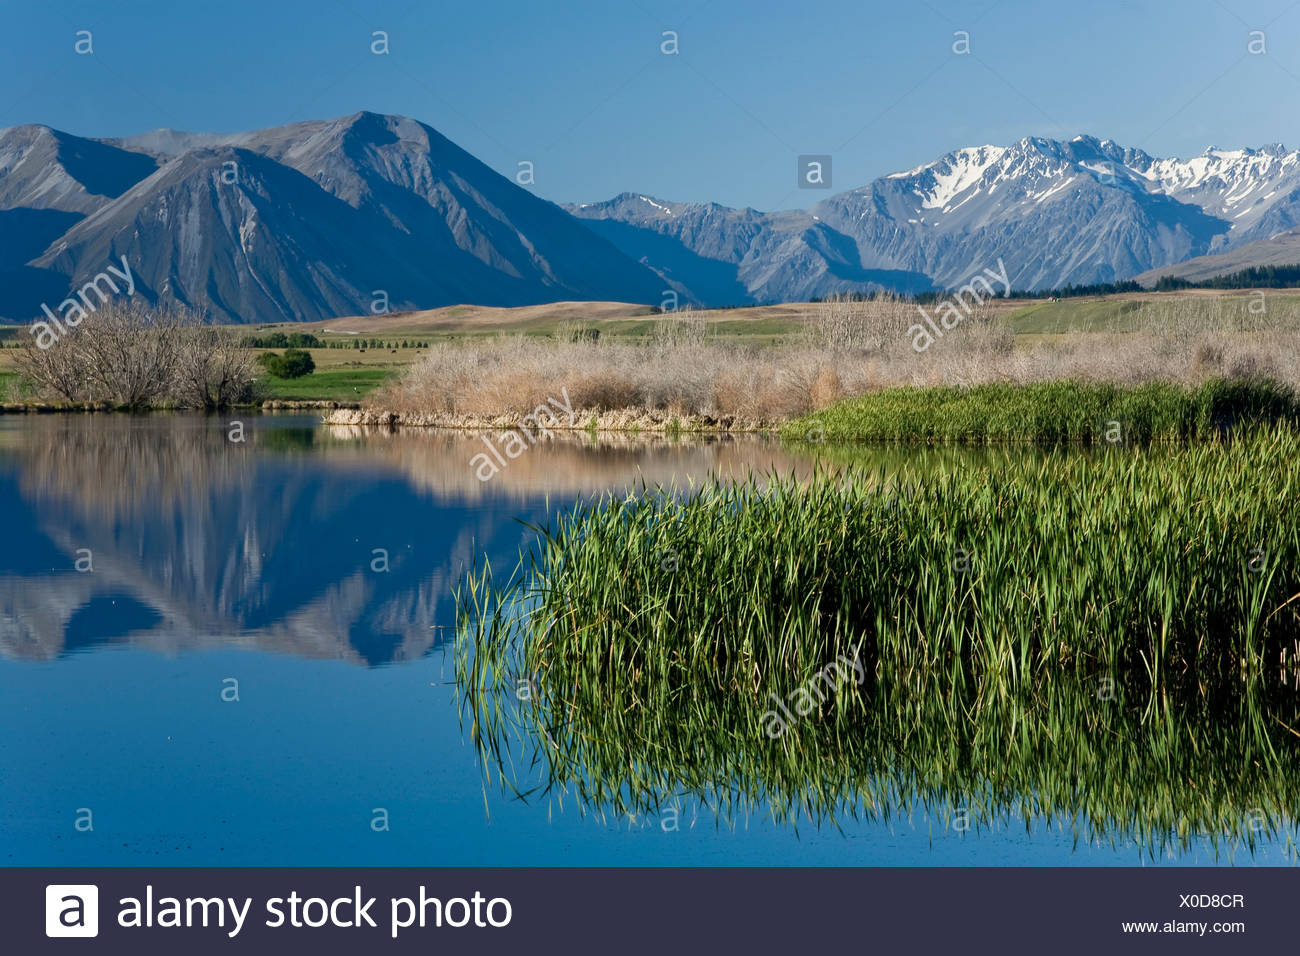 Water reflections on the banks of Lake Maoris in the morning light, South Island, New Zealand Stock Photo